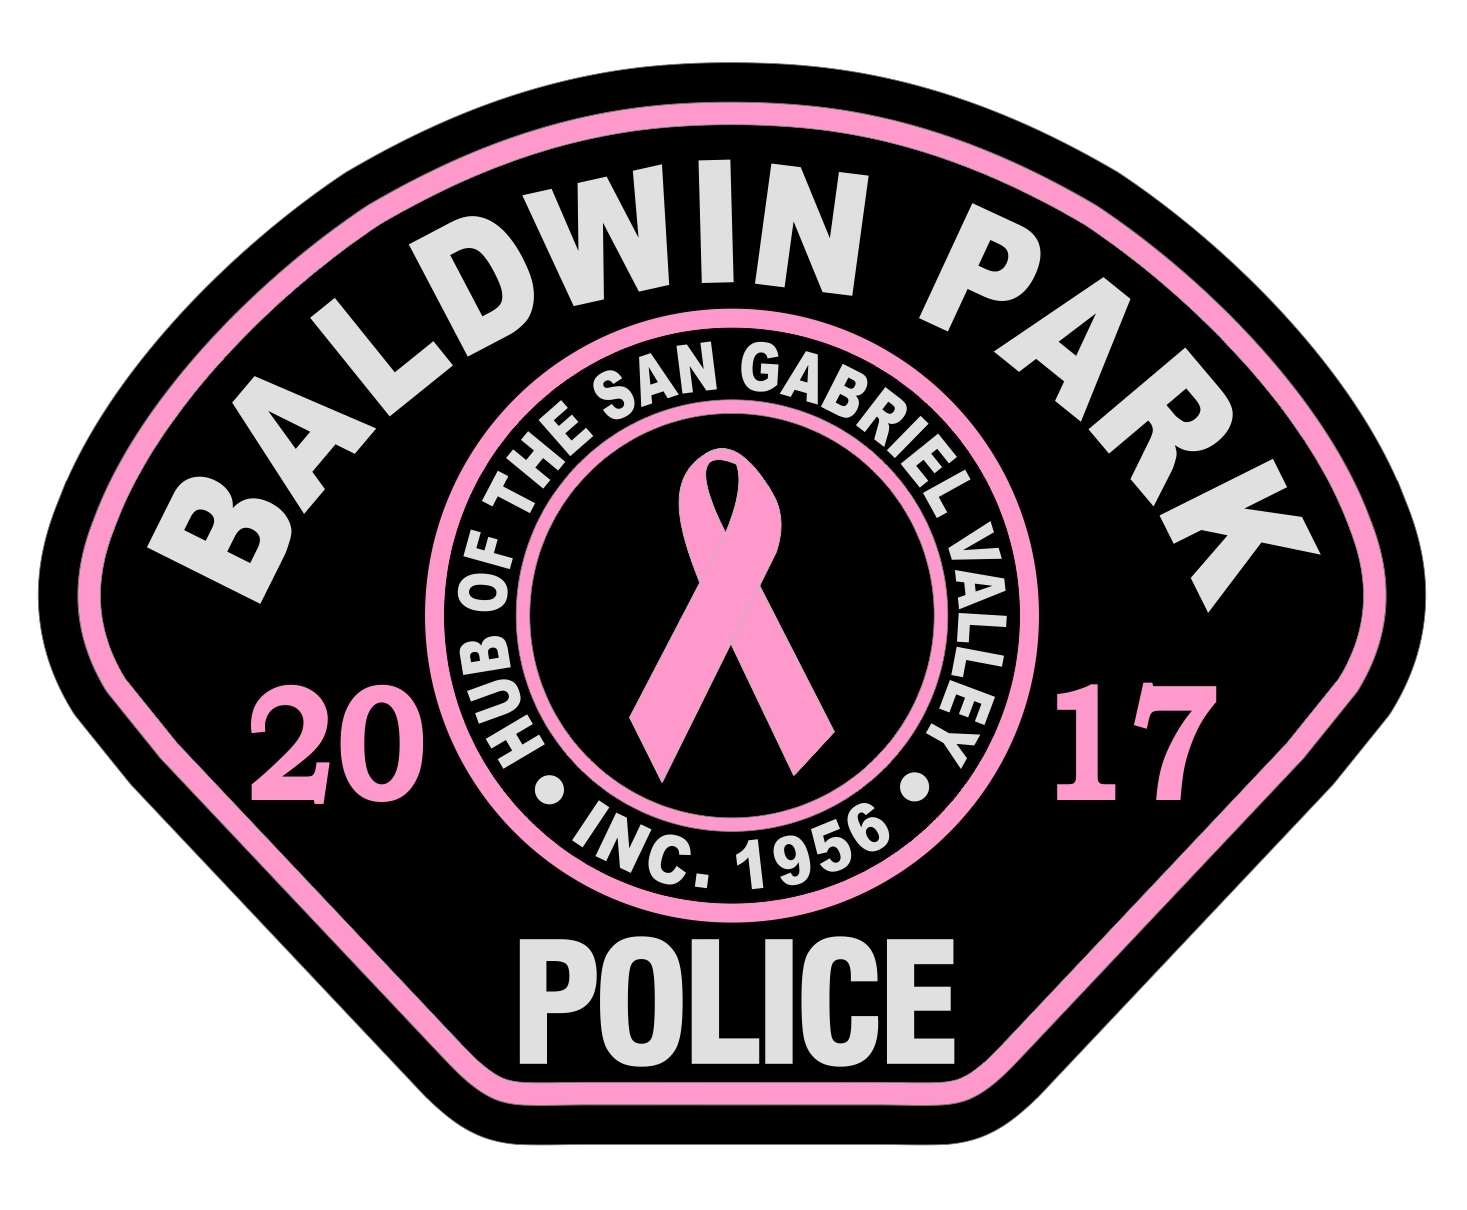 Baldwin Park Police (CA) - PINK PATCH 2017 (6-14-1